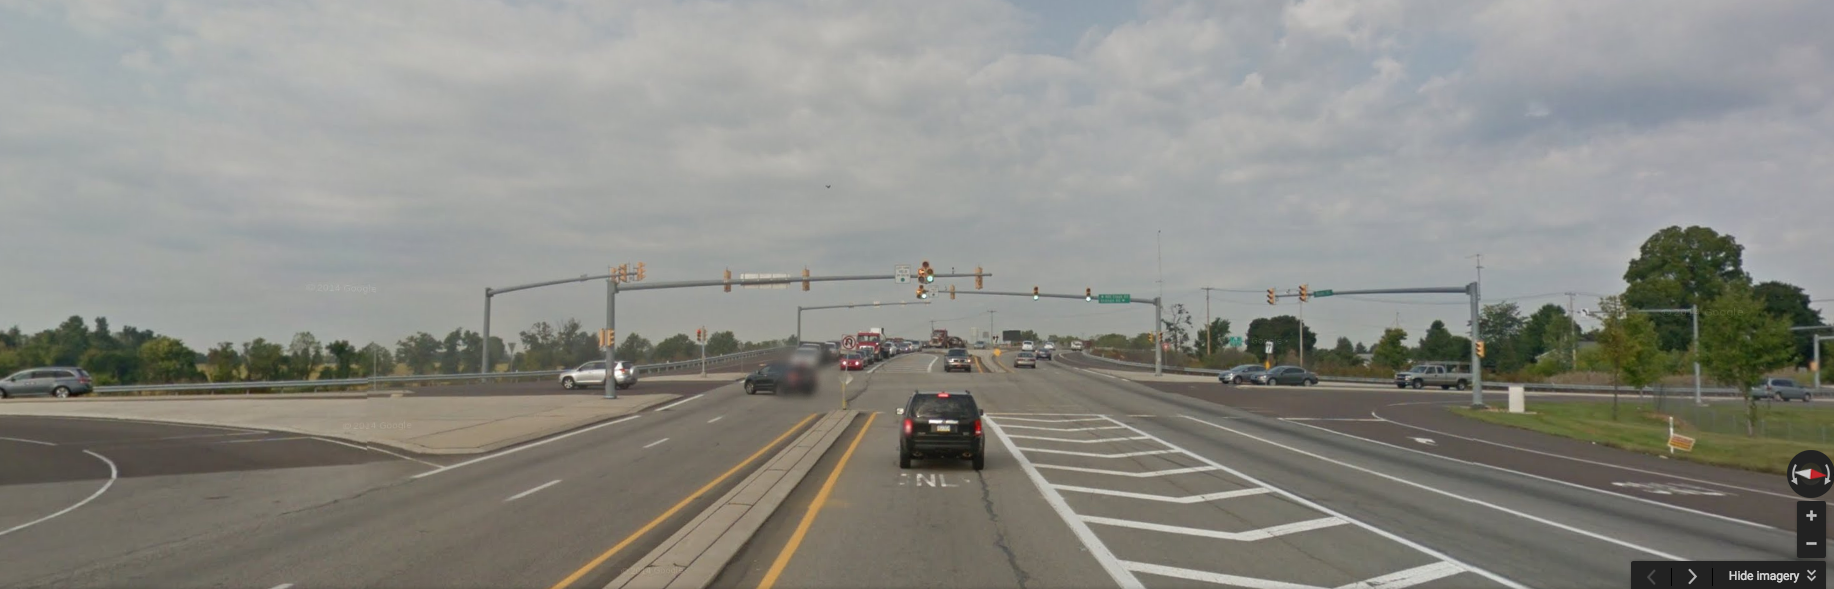 One of the most dangerous intersections in the region.